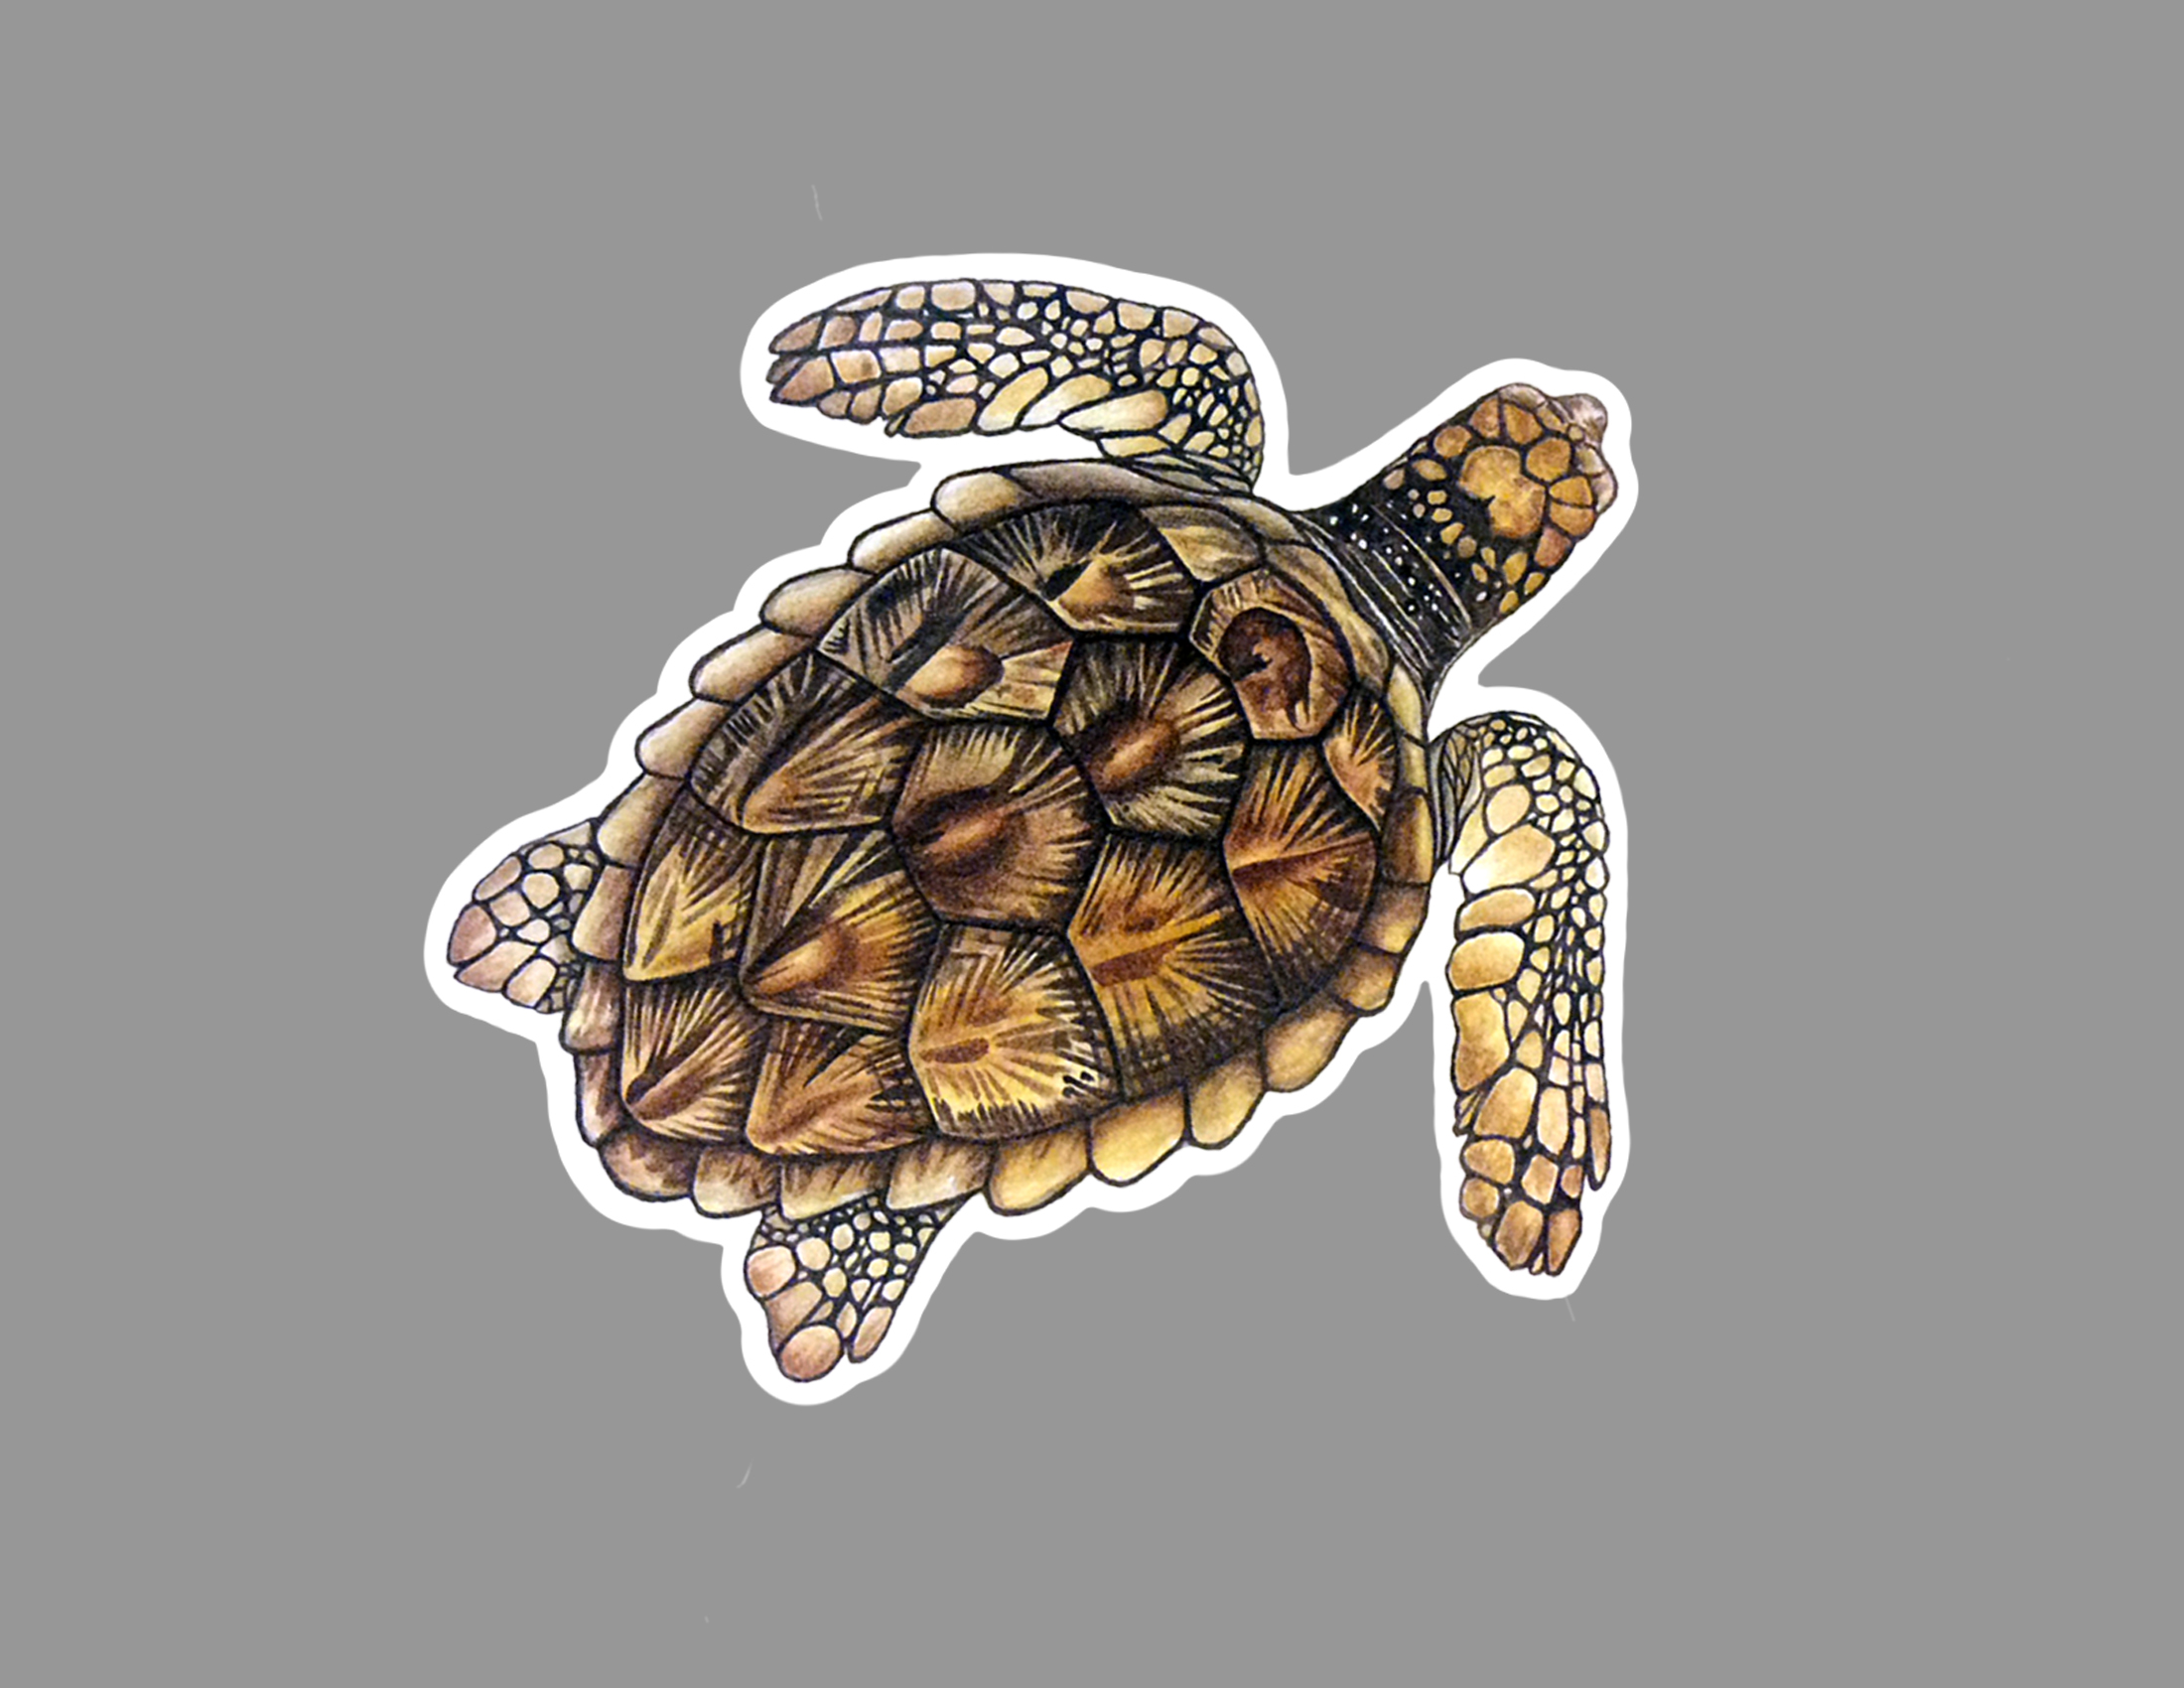 turtle sticker.jpg